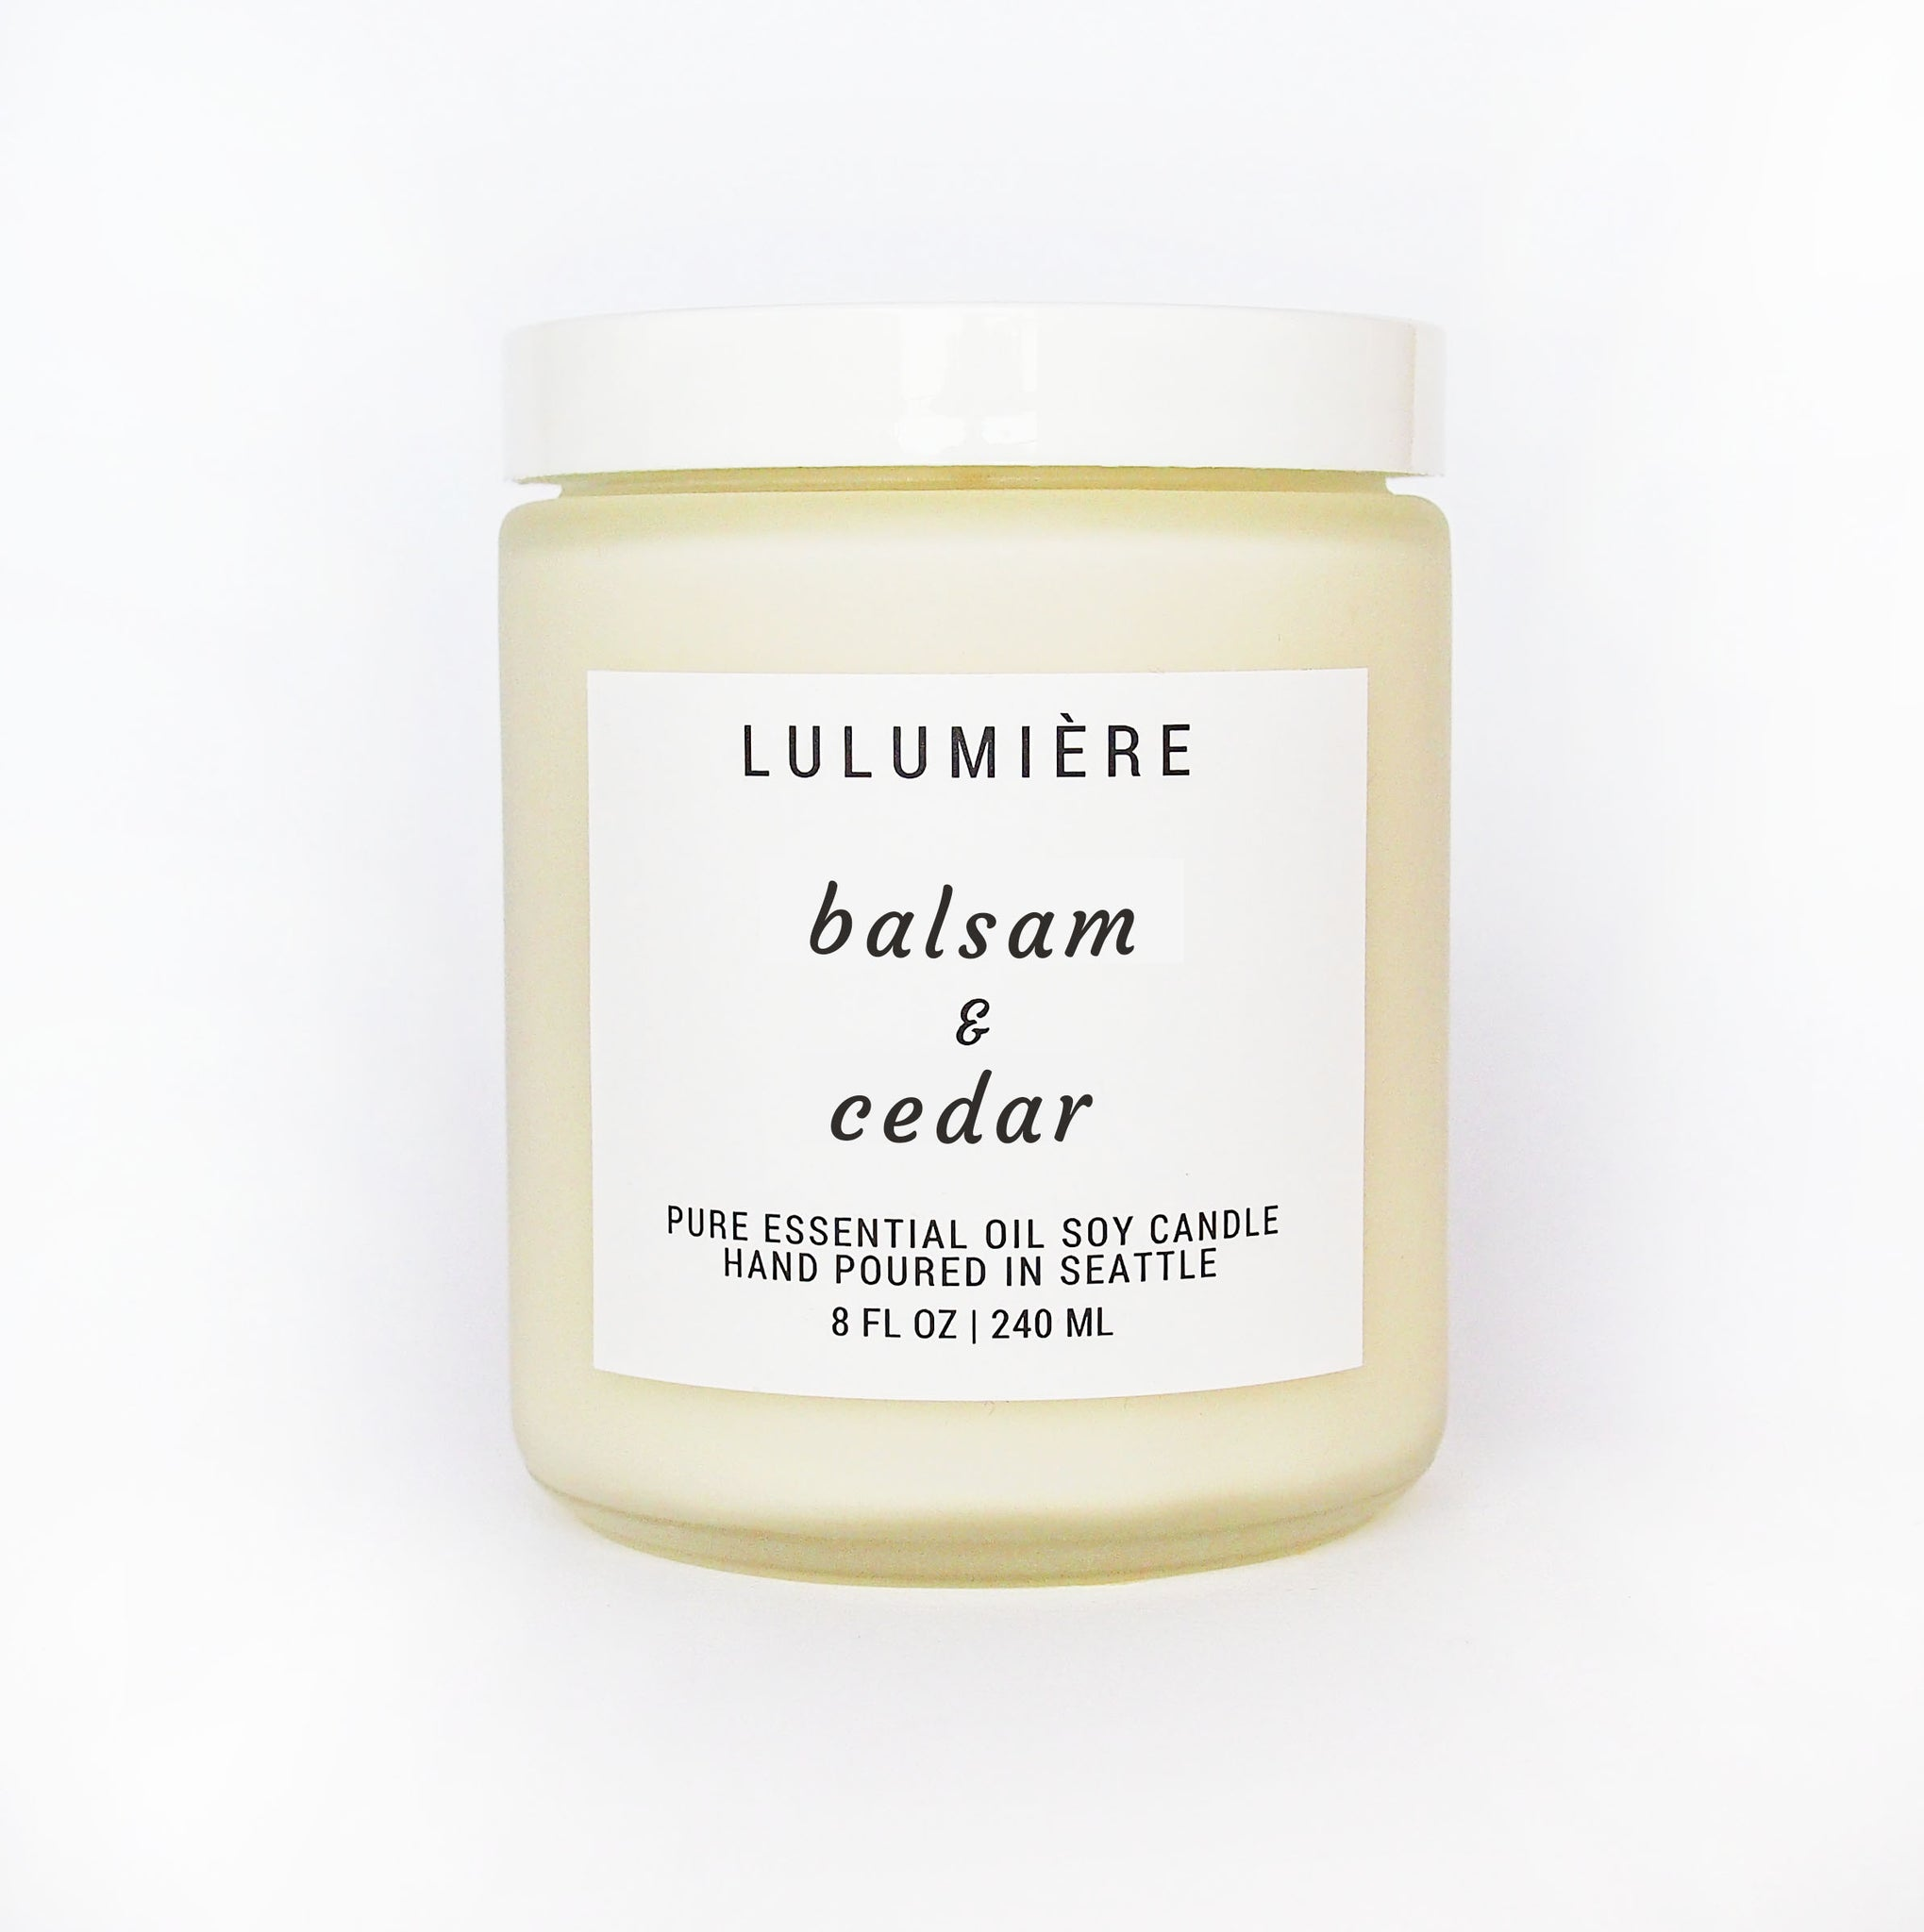 Balsam & Cedar 100% Essential Oil Candle